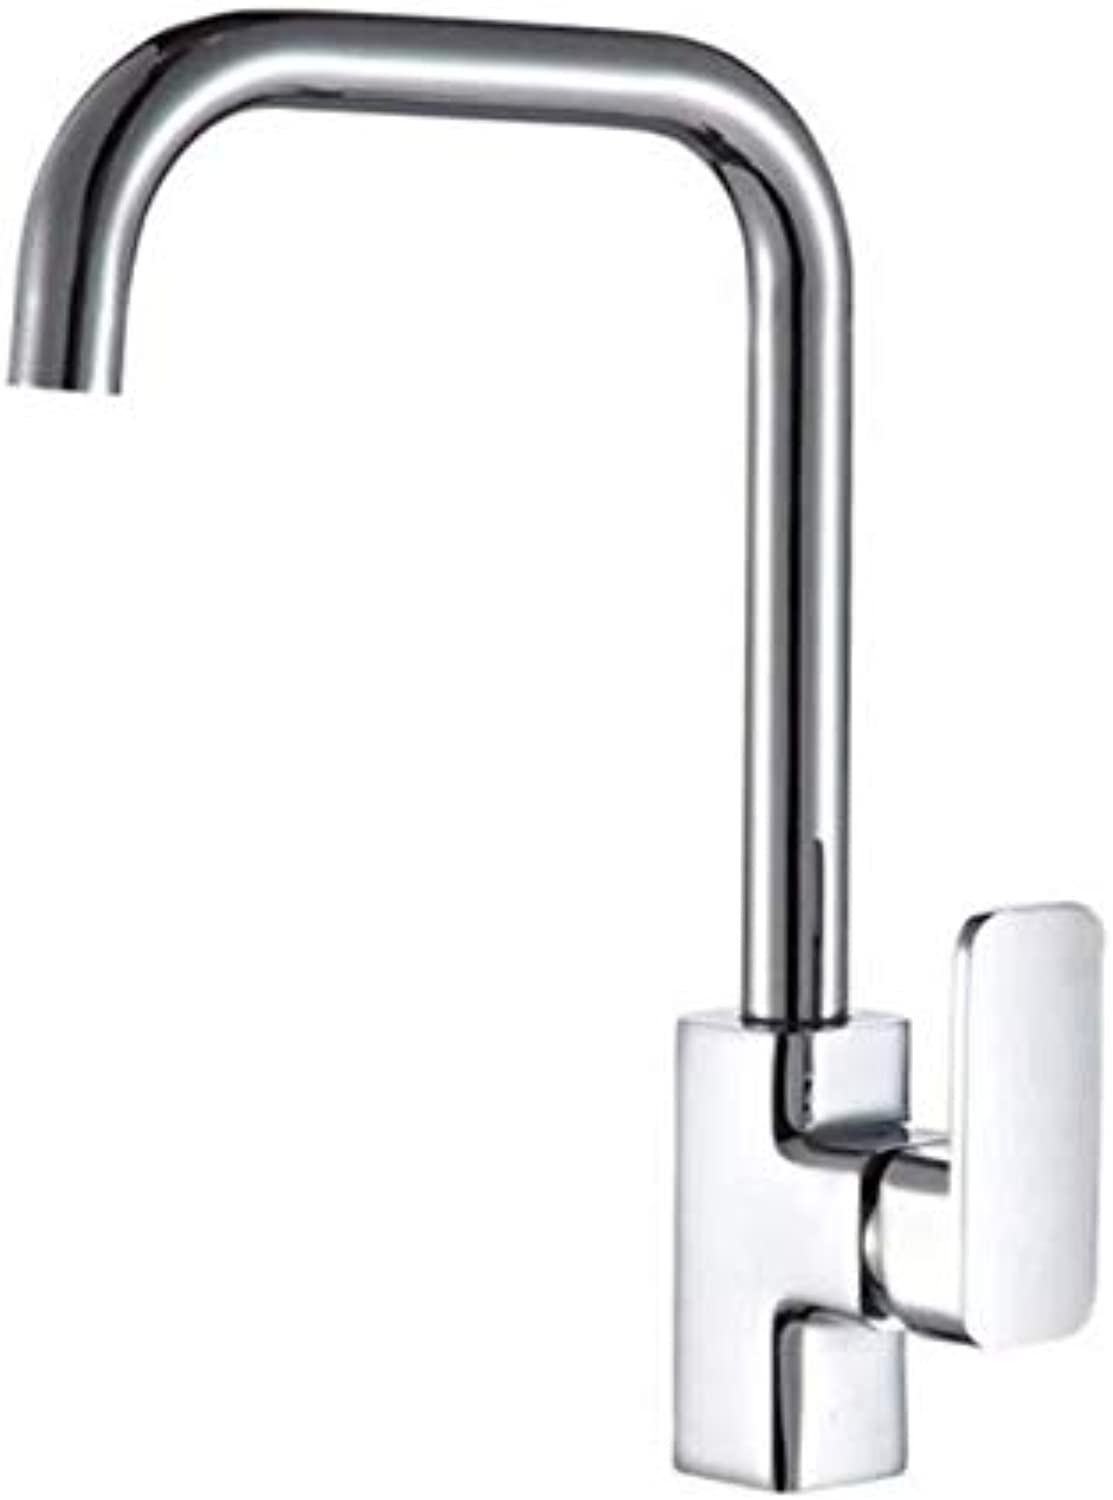 Taps Kitchen Sinktaps Mixer Swivel Faucet Sink Bathroom Kitchen Faucet Hot and Cold